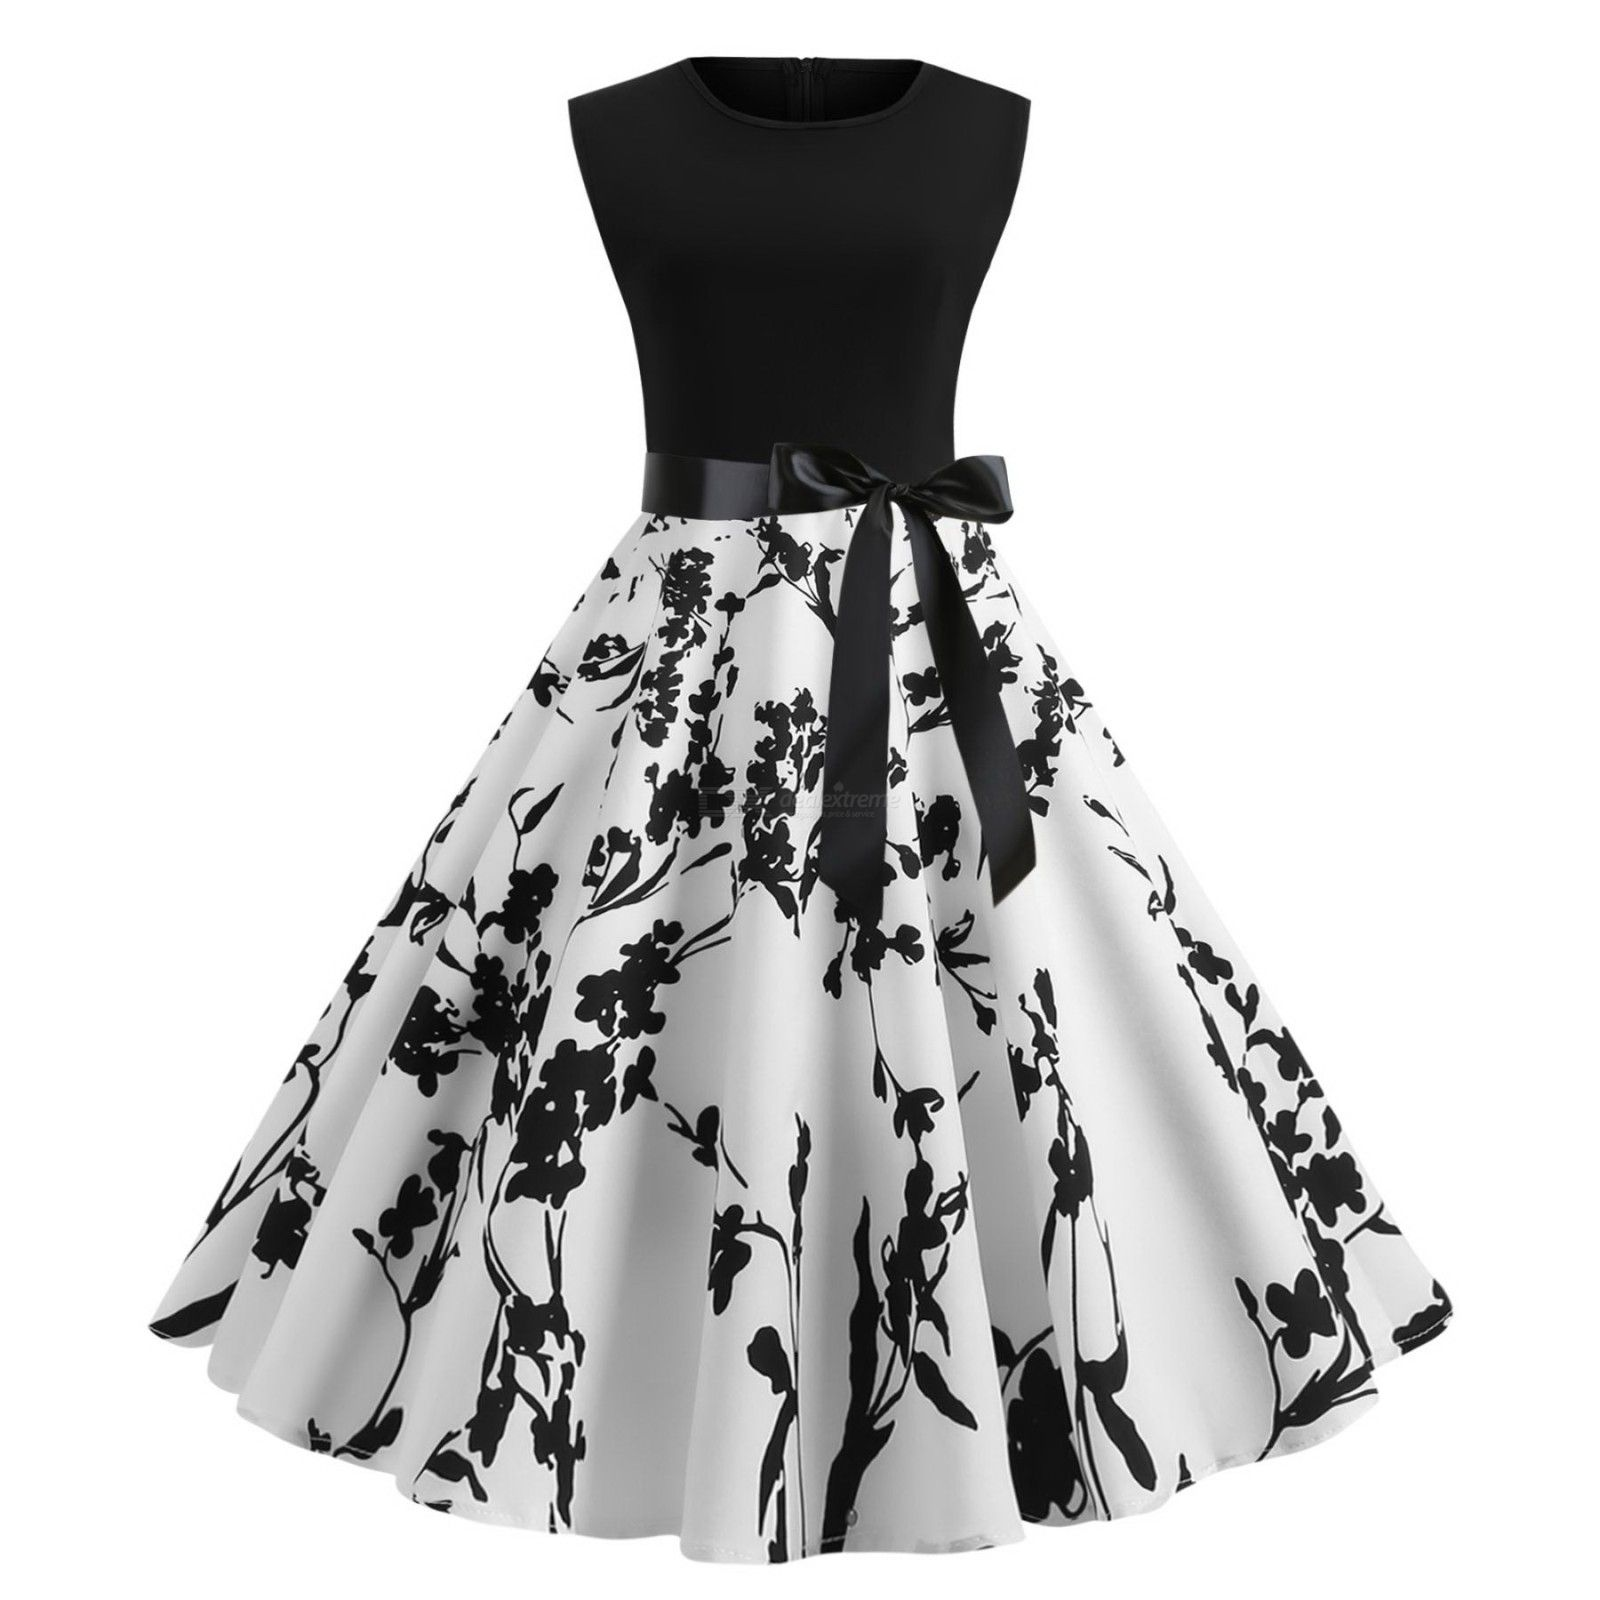 Sleeveless   Cocktail   Vintage   Swing   Party   Women   Dress   Print   Tie   Ty